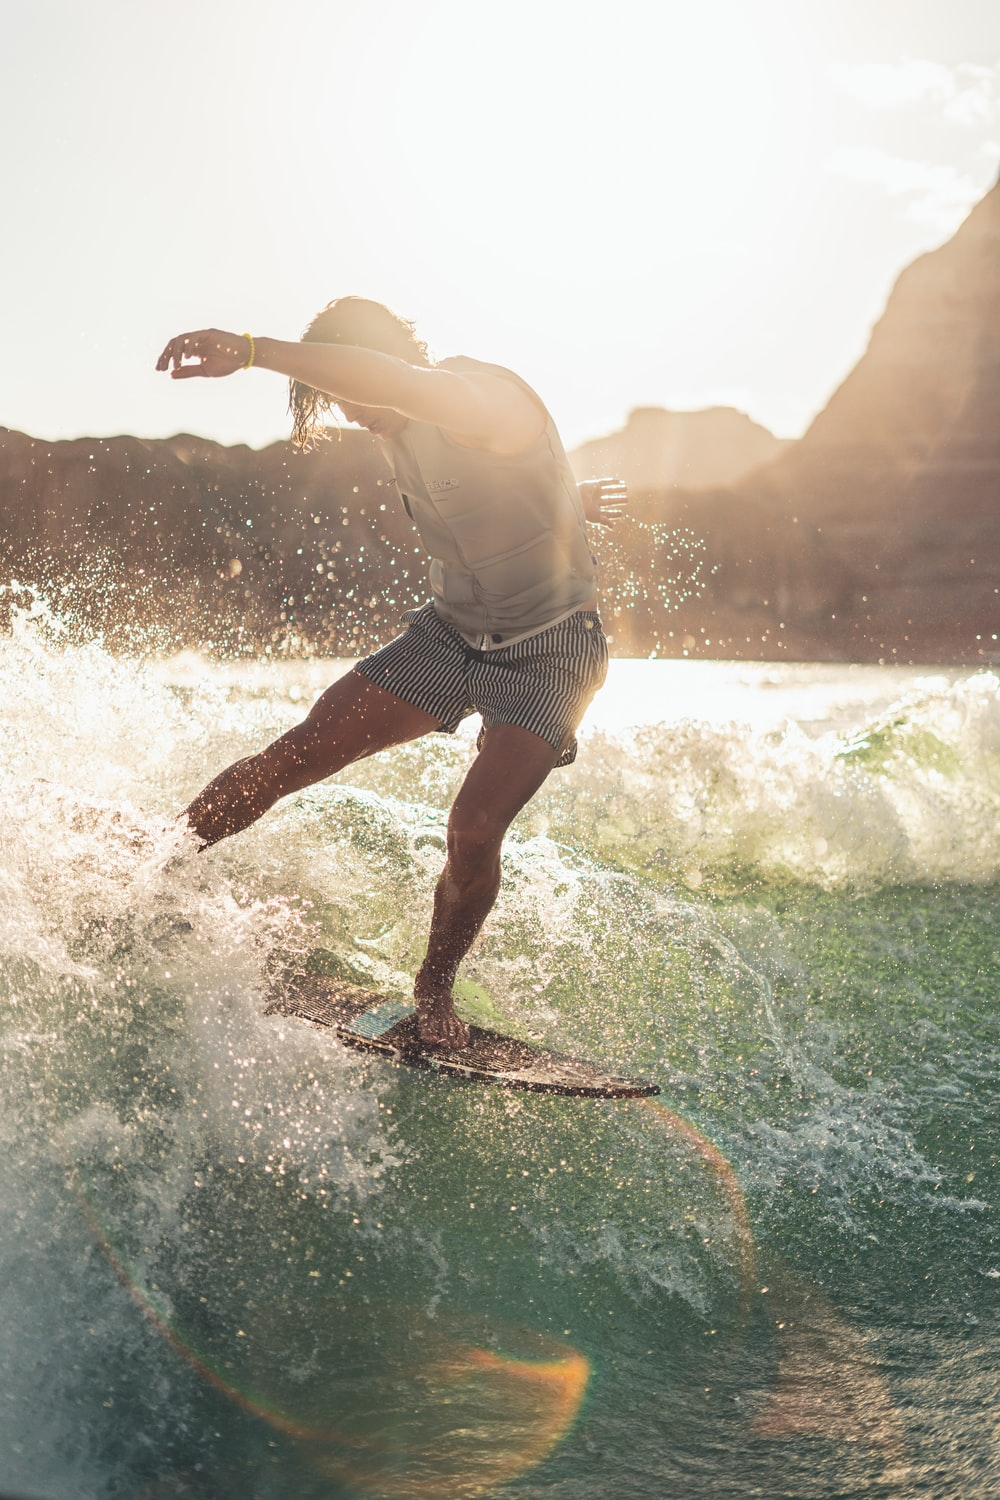 man in white tank top and blue shorts surfing on sea waves during daytime